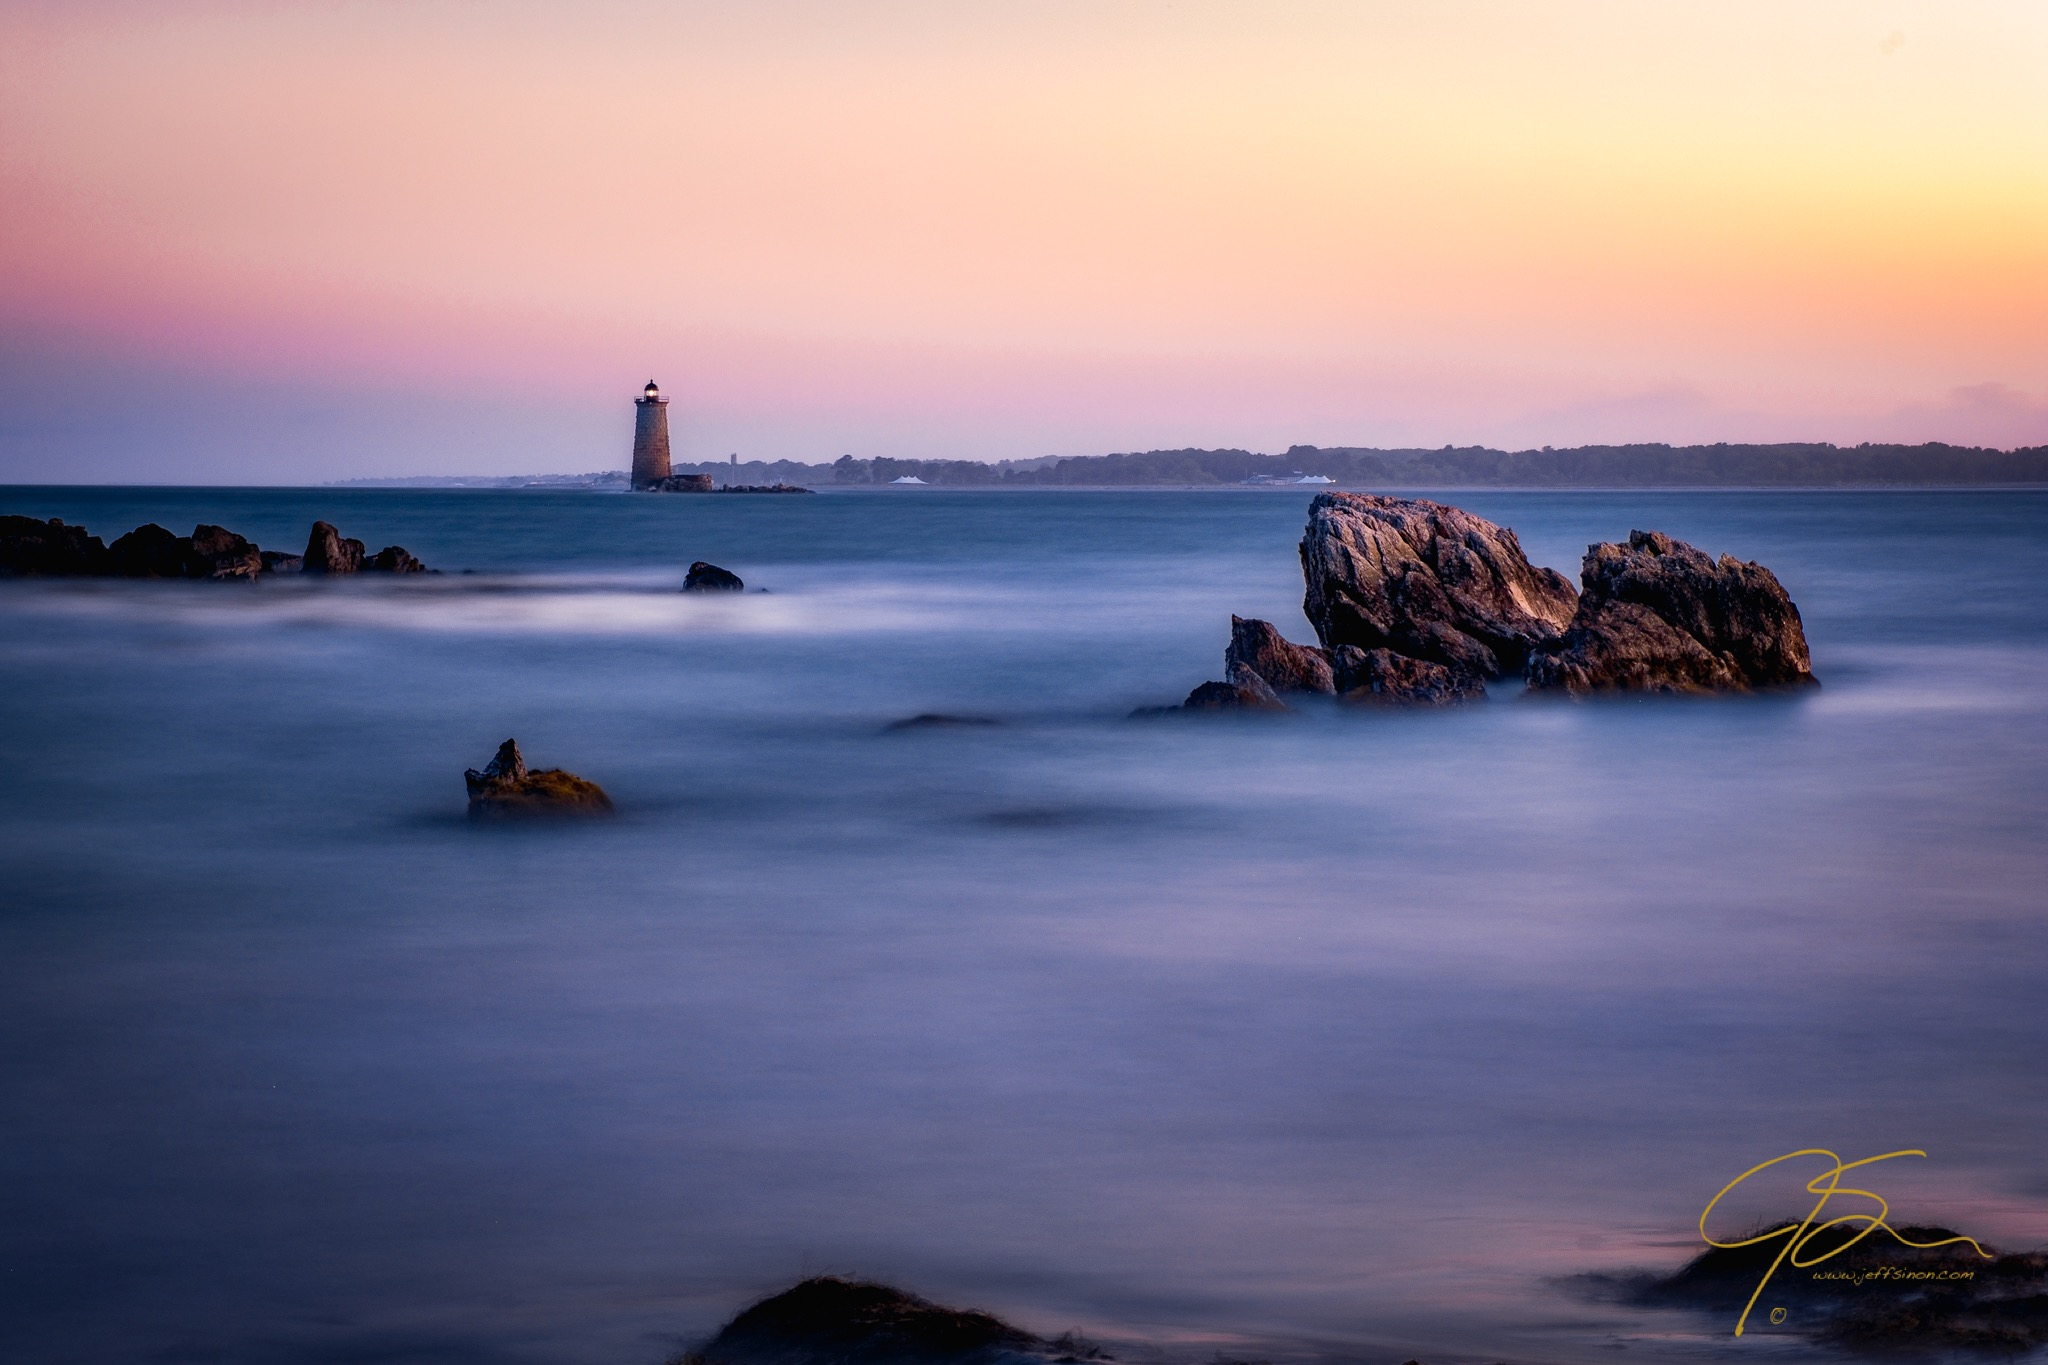 whaleback light at dusk with large rocks in the foreground